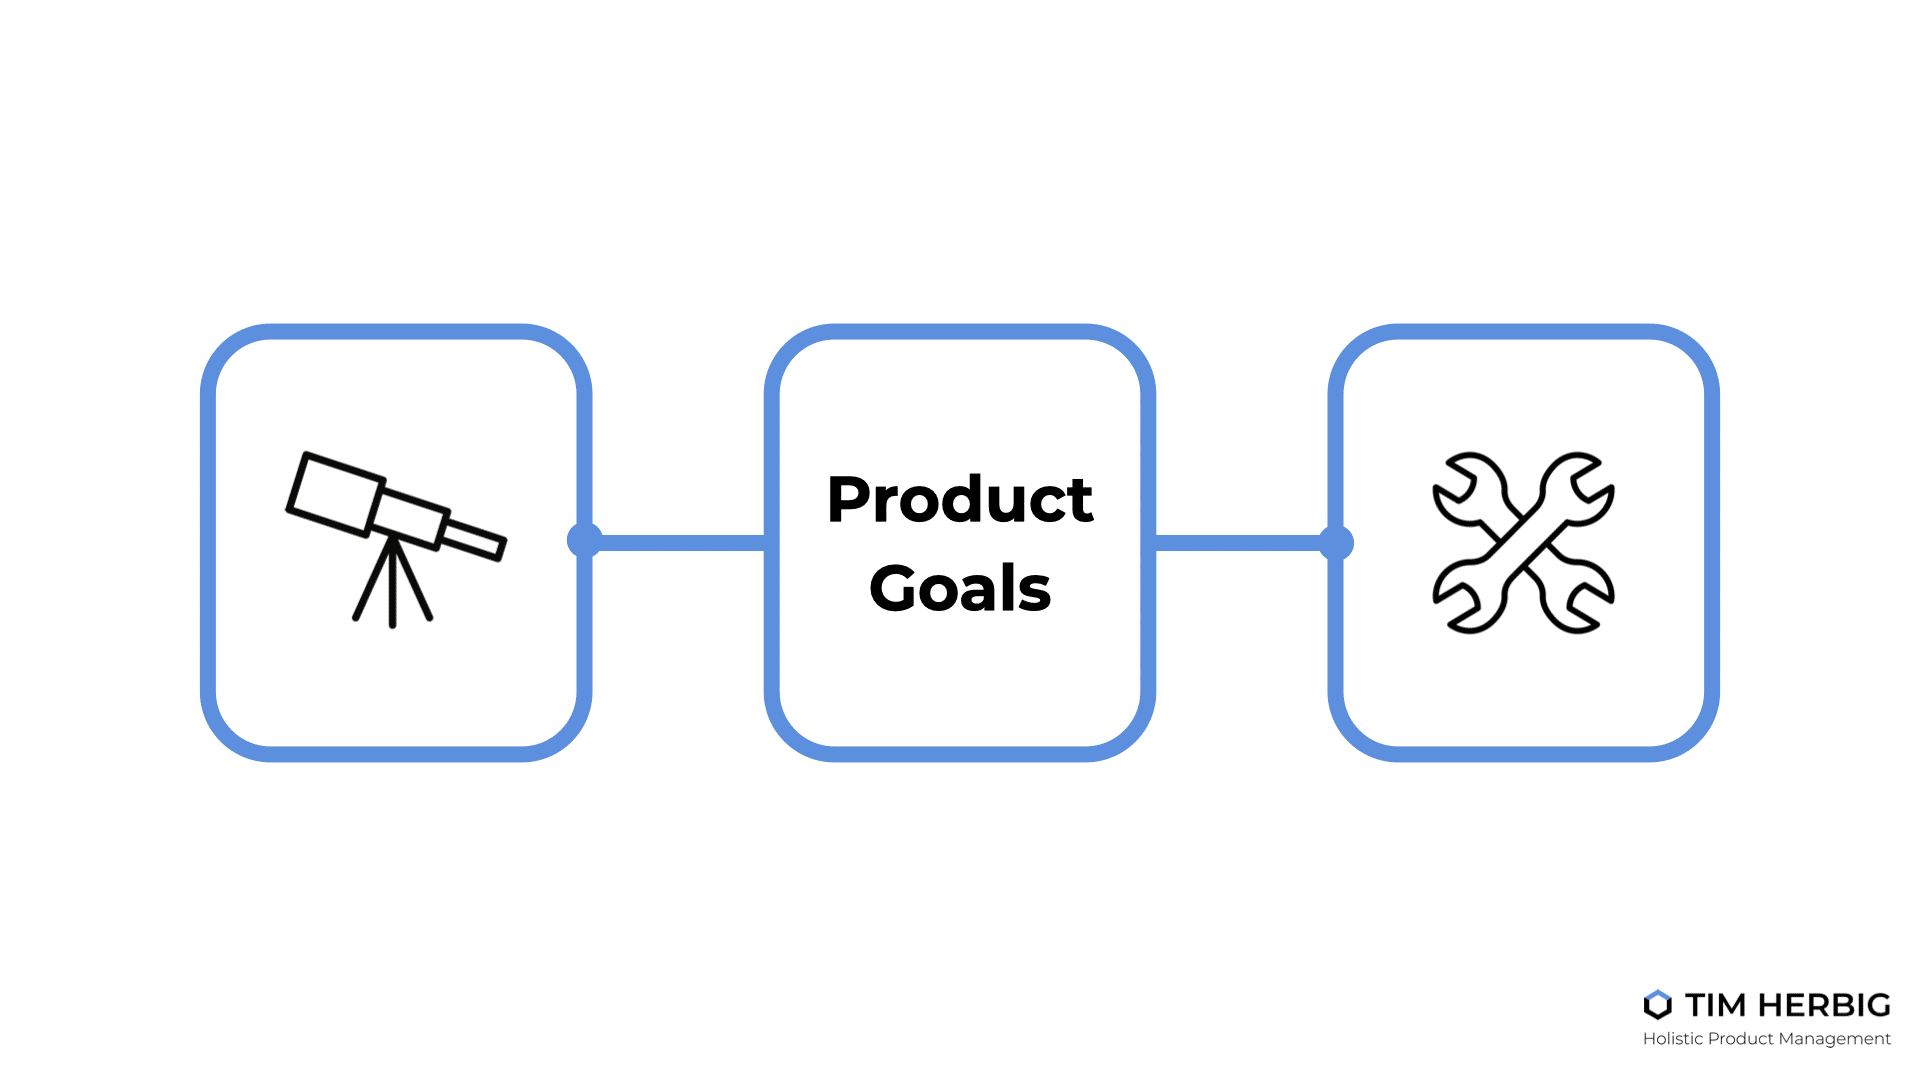 Product Goals bridging Strategy and Execution